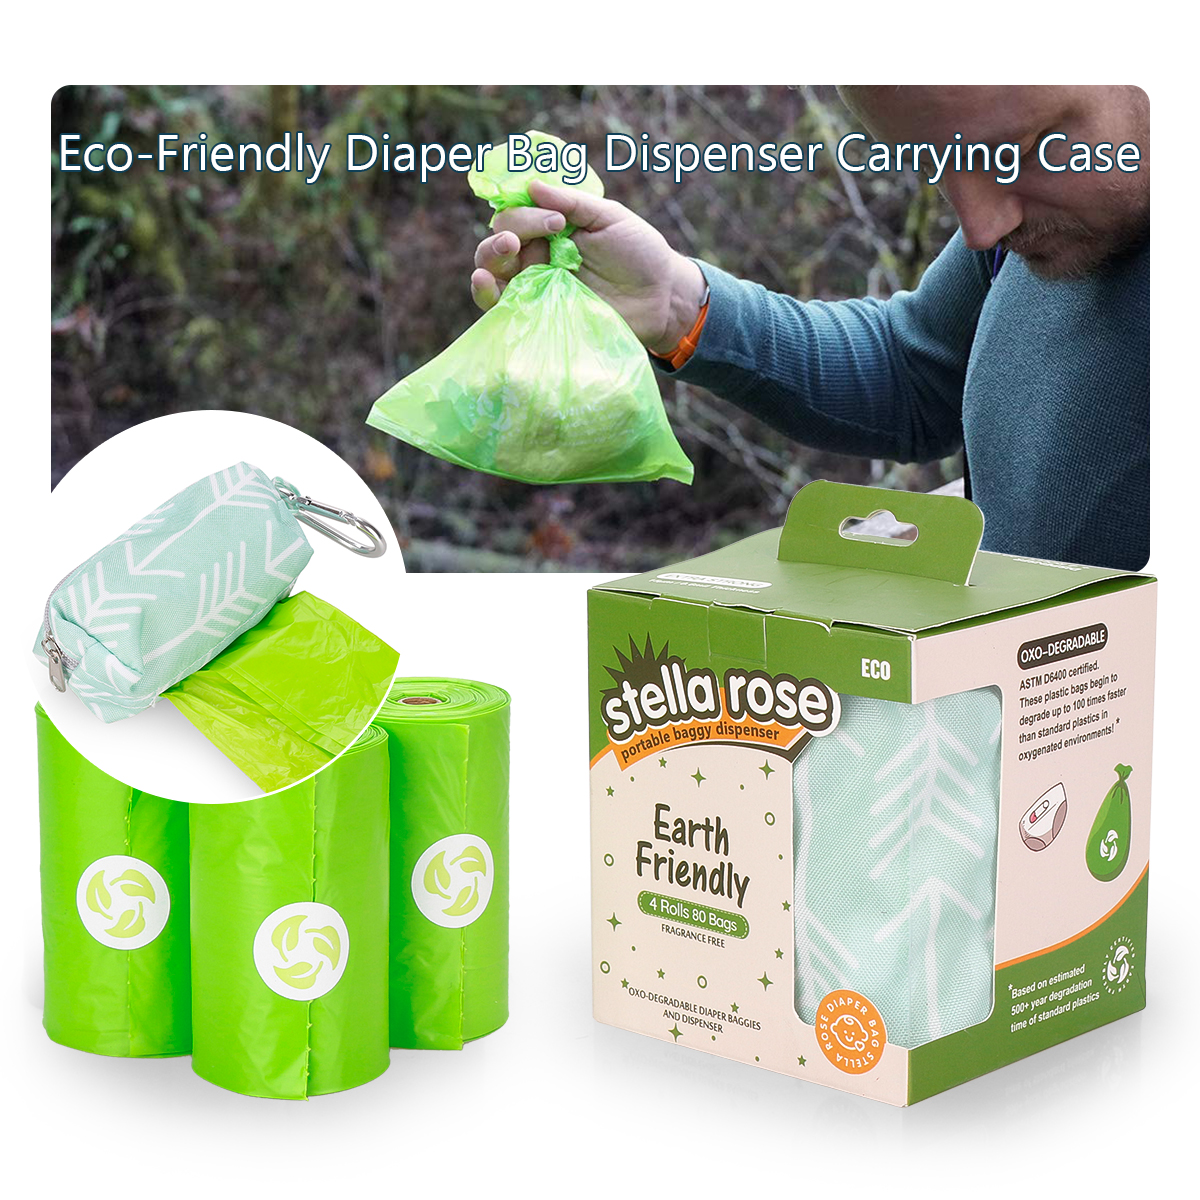 Eco-Friendly Diaper Bag Dispenser Carrying Case and 80 OXO-Degradable Trash Bags